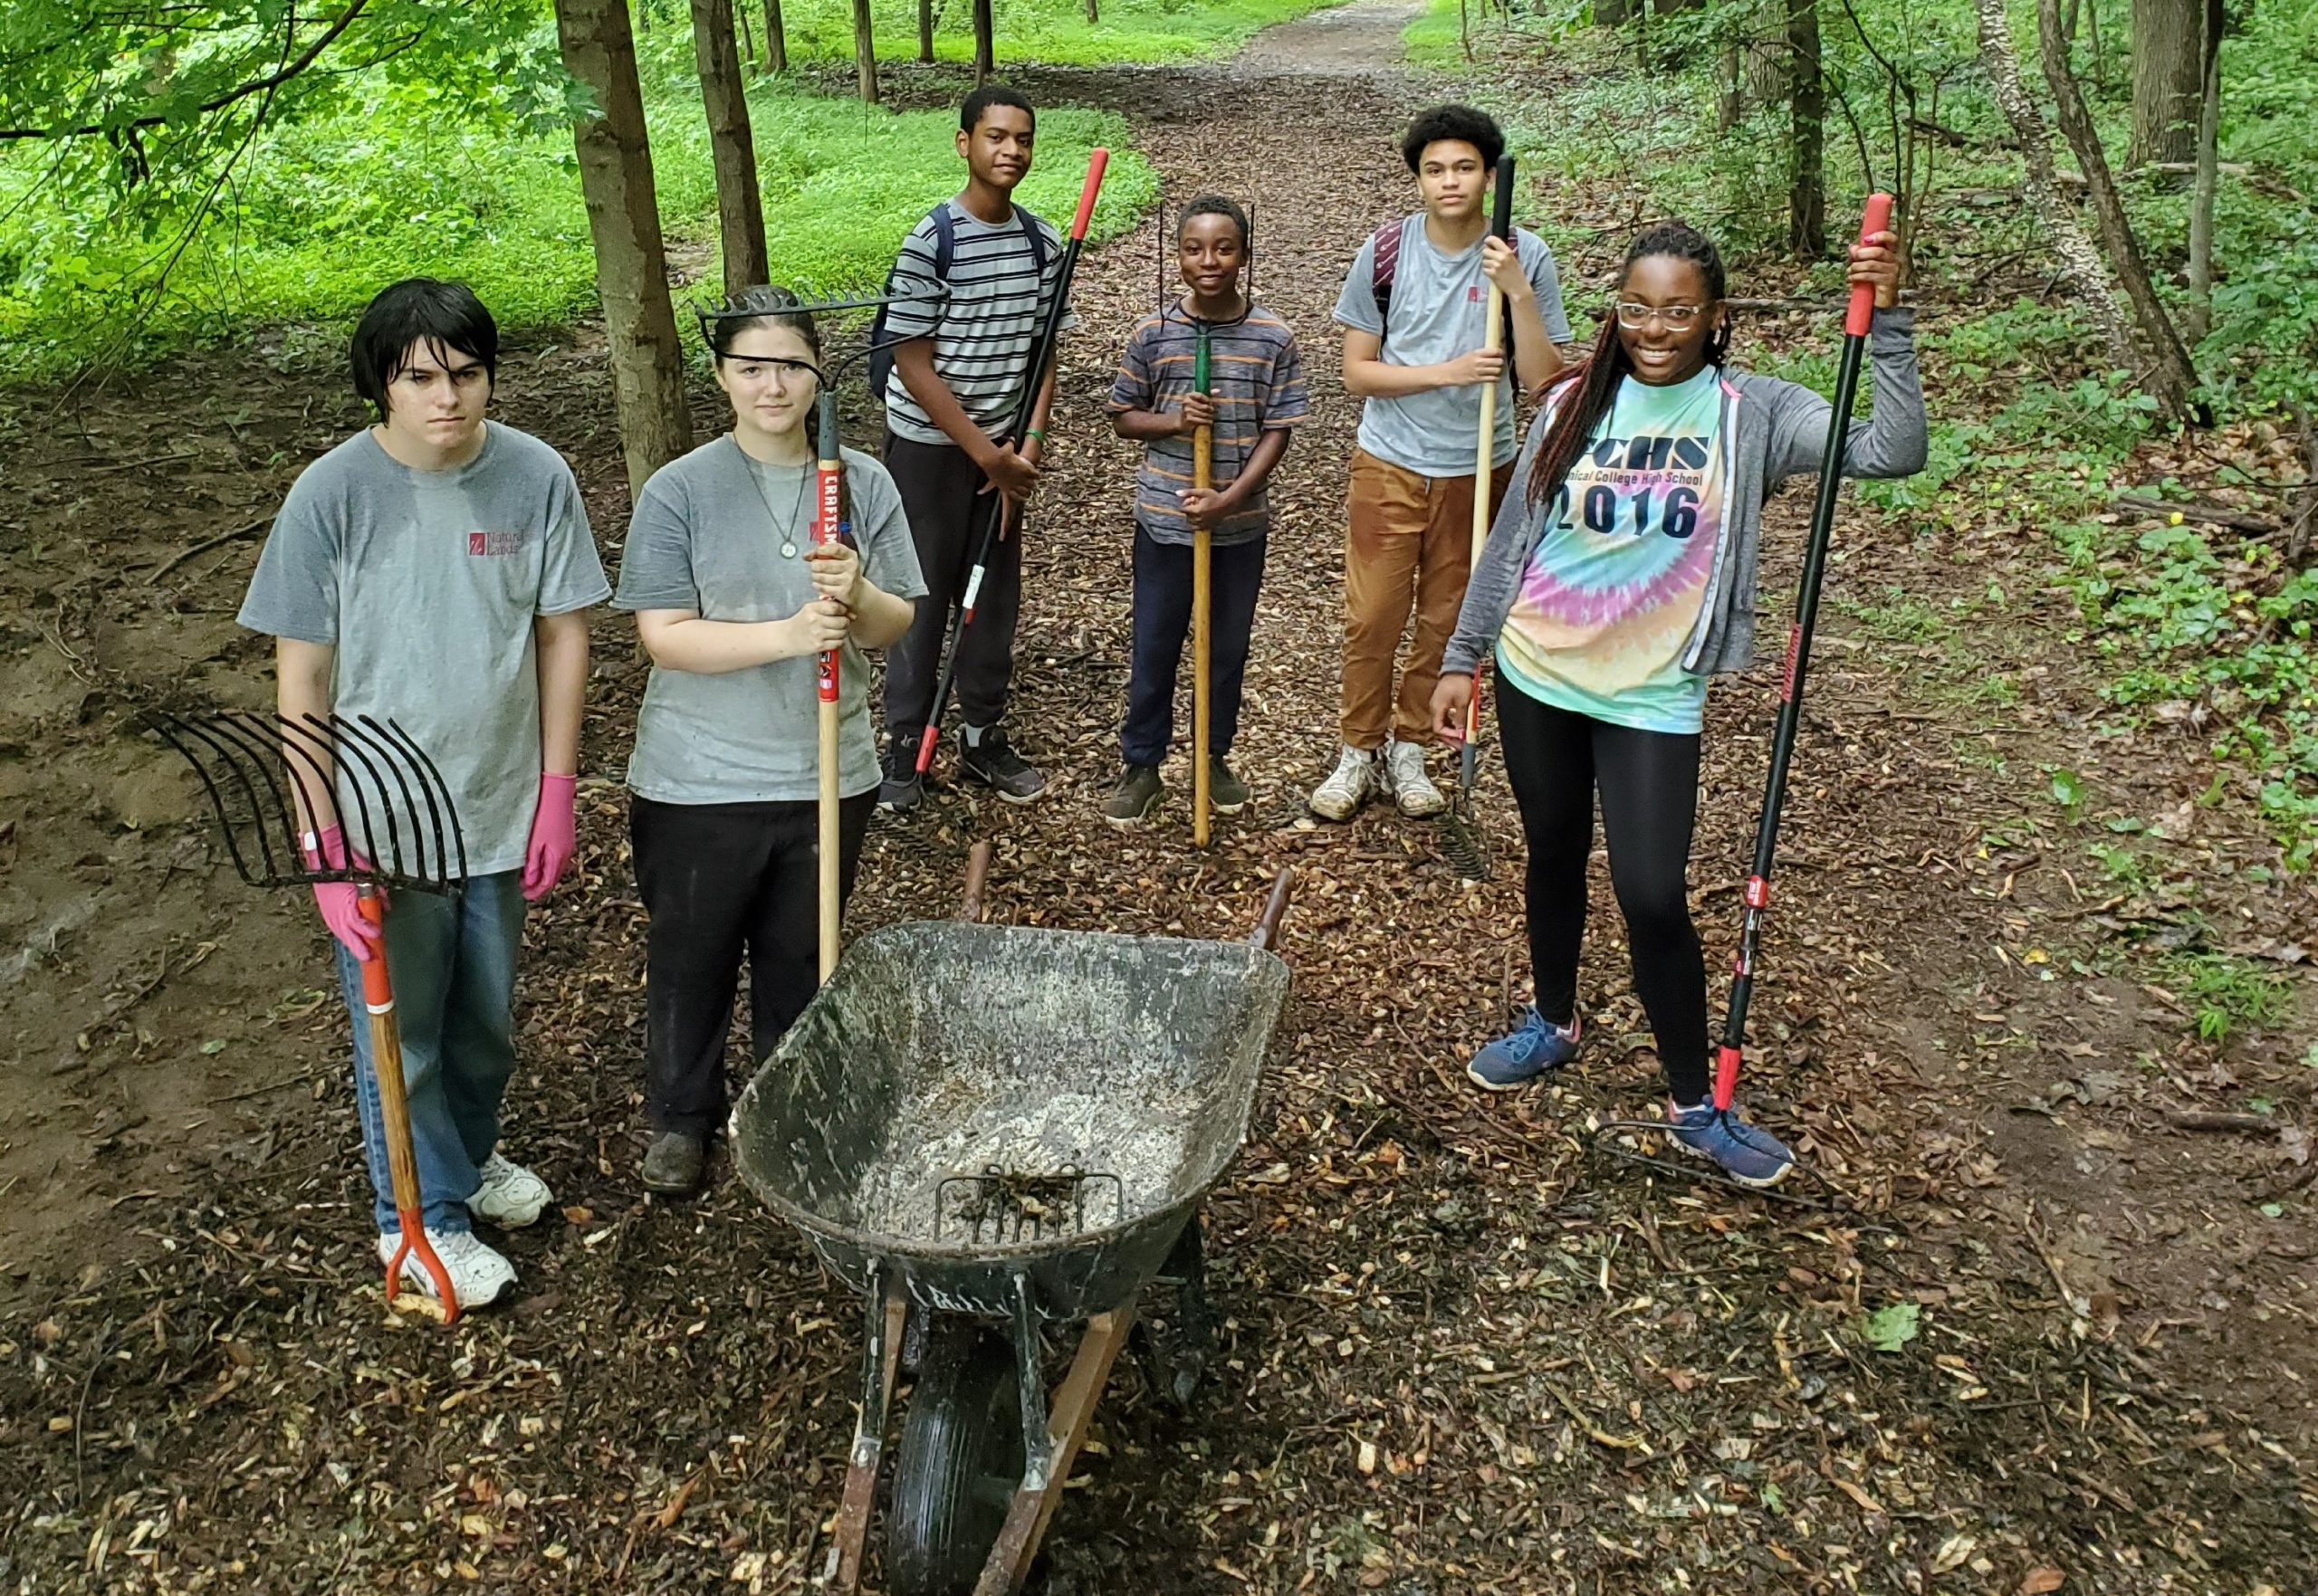 Going Outside to Look Inward: Natural Lands to Offer Outdoor Employment for Youth Facing Challenges